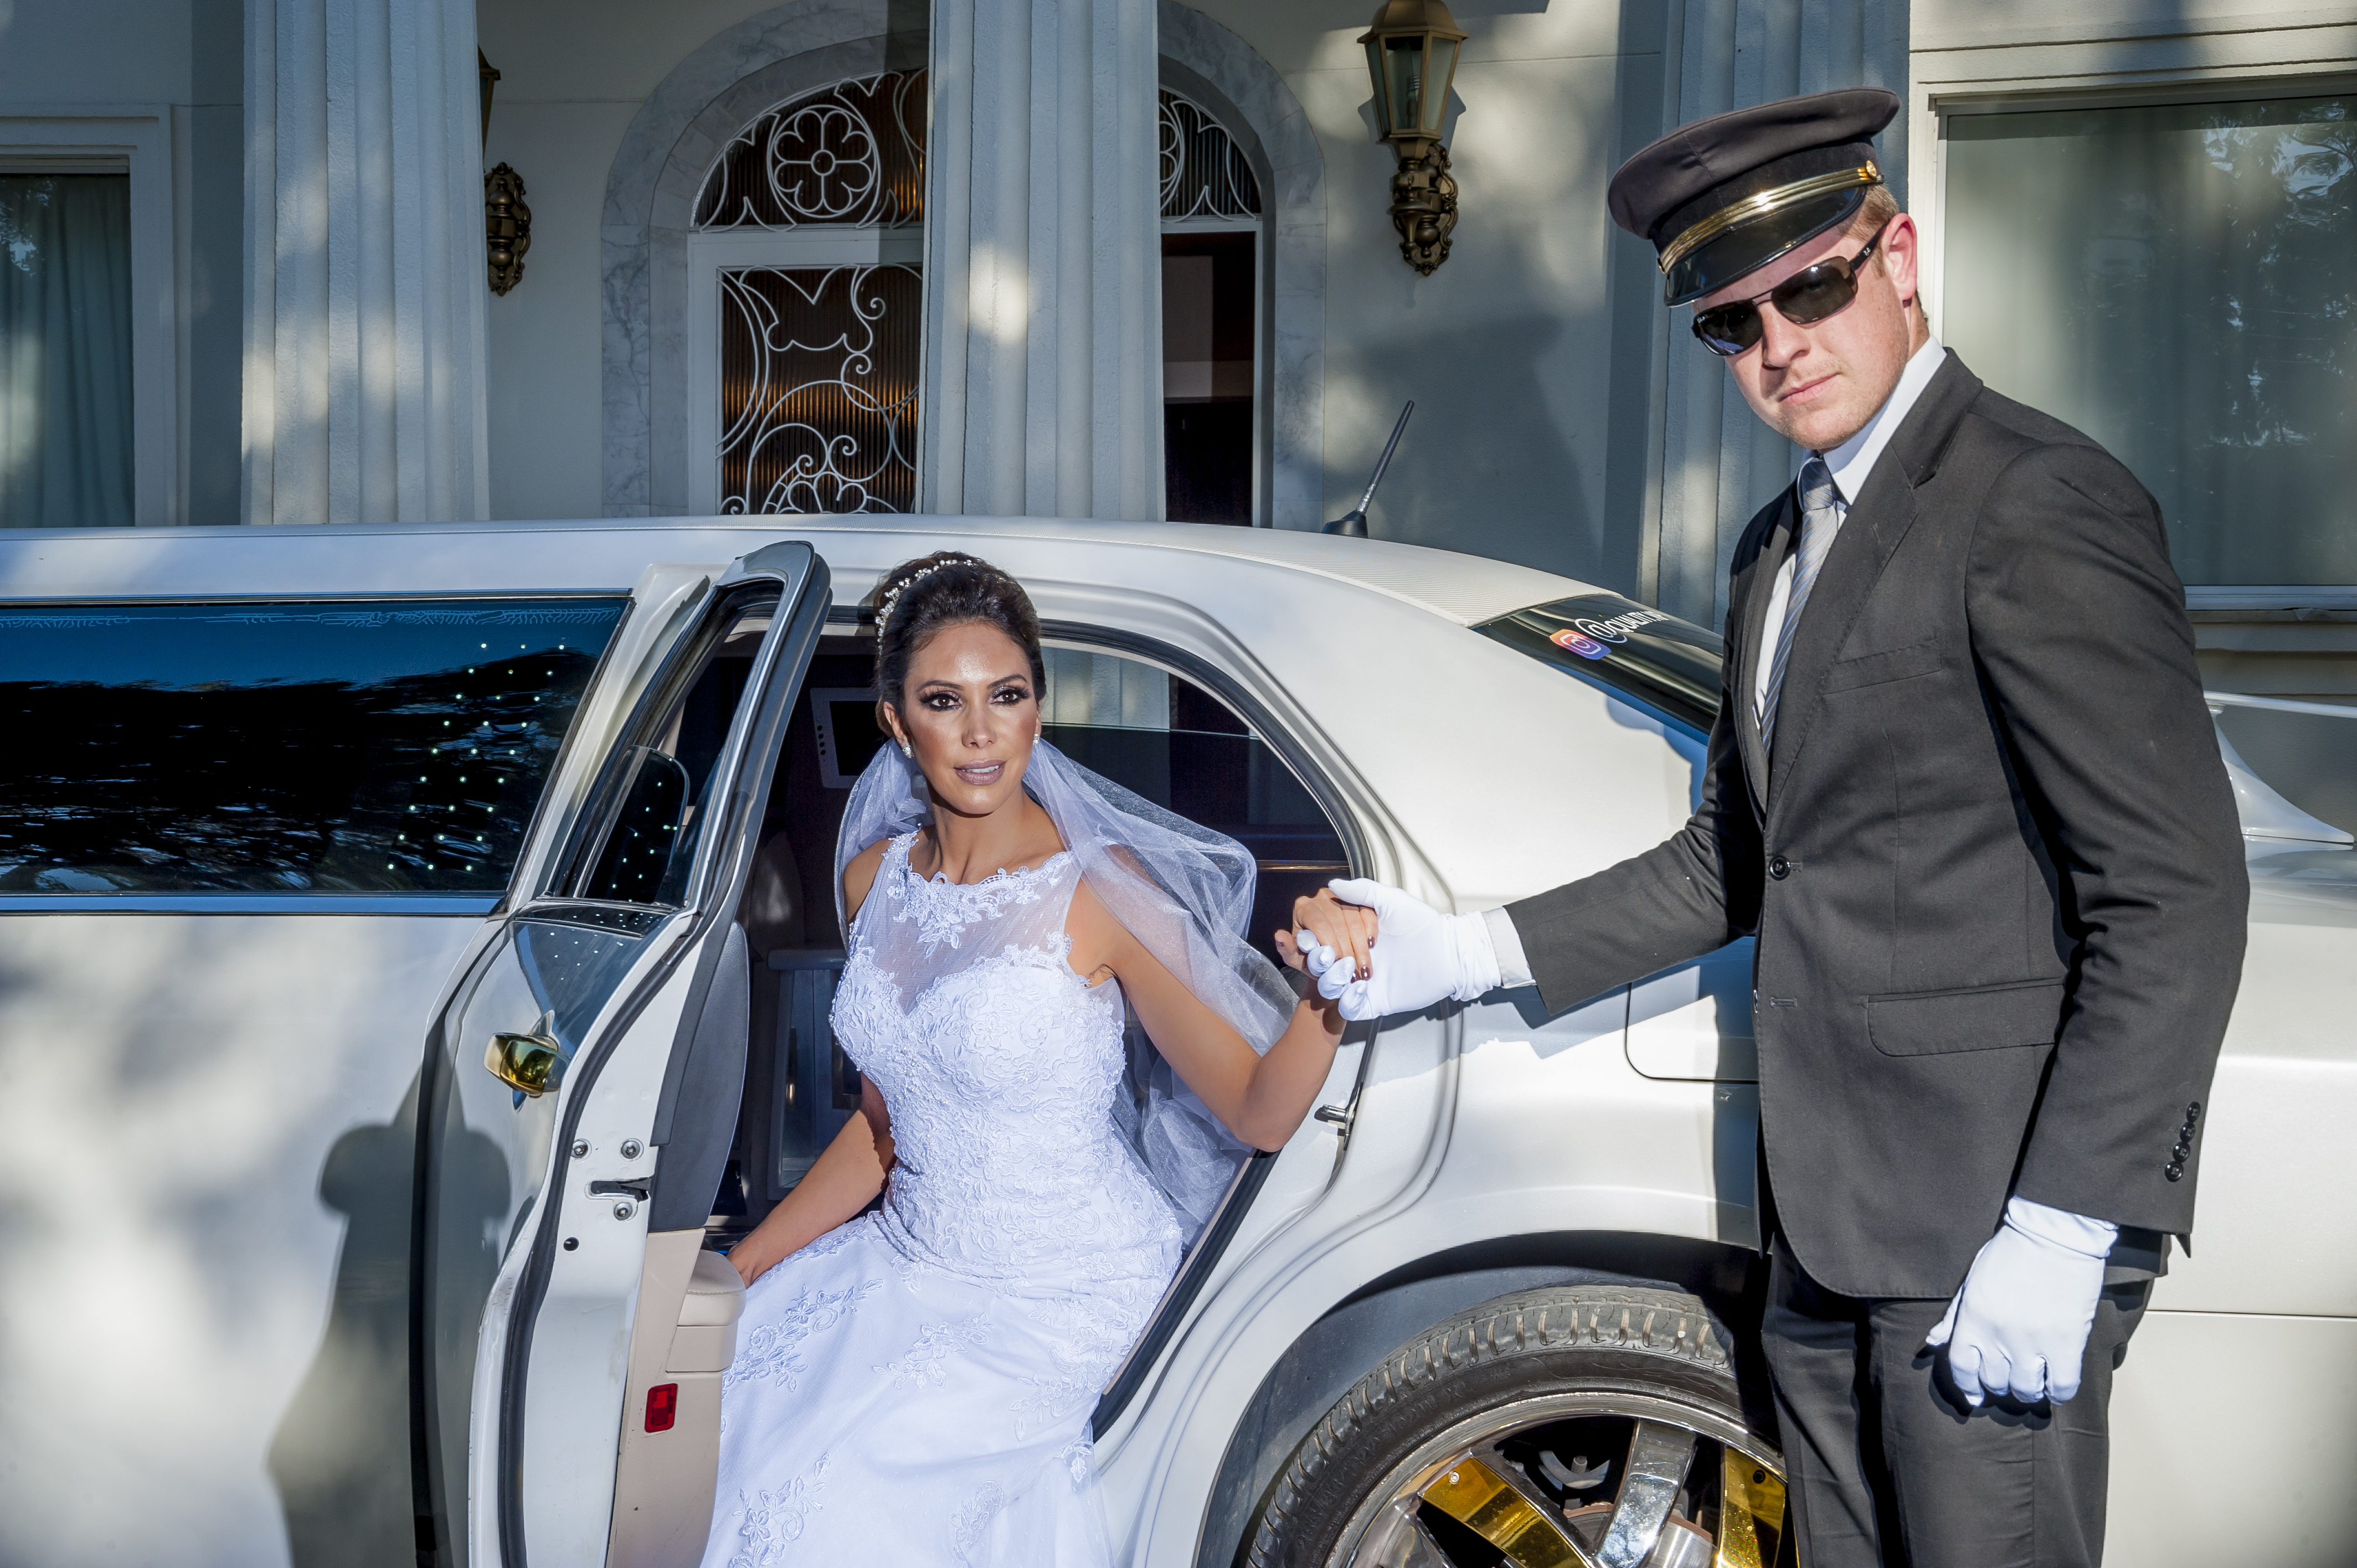 chauffeur of limousine